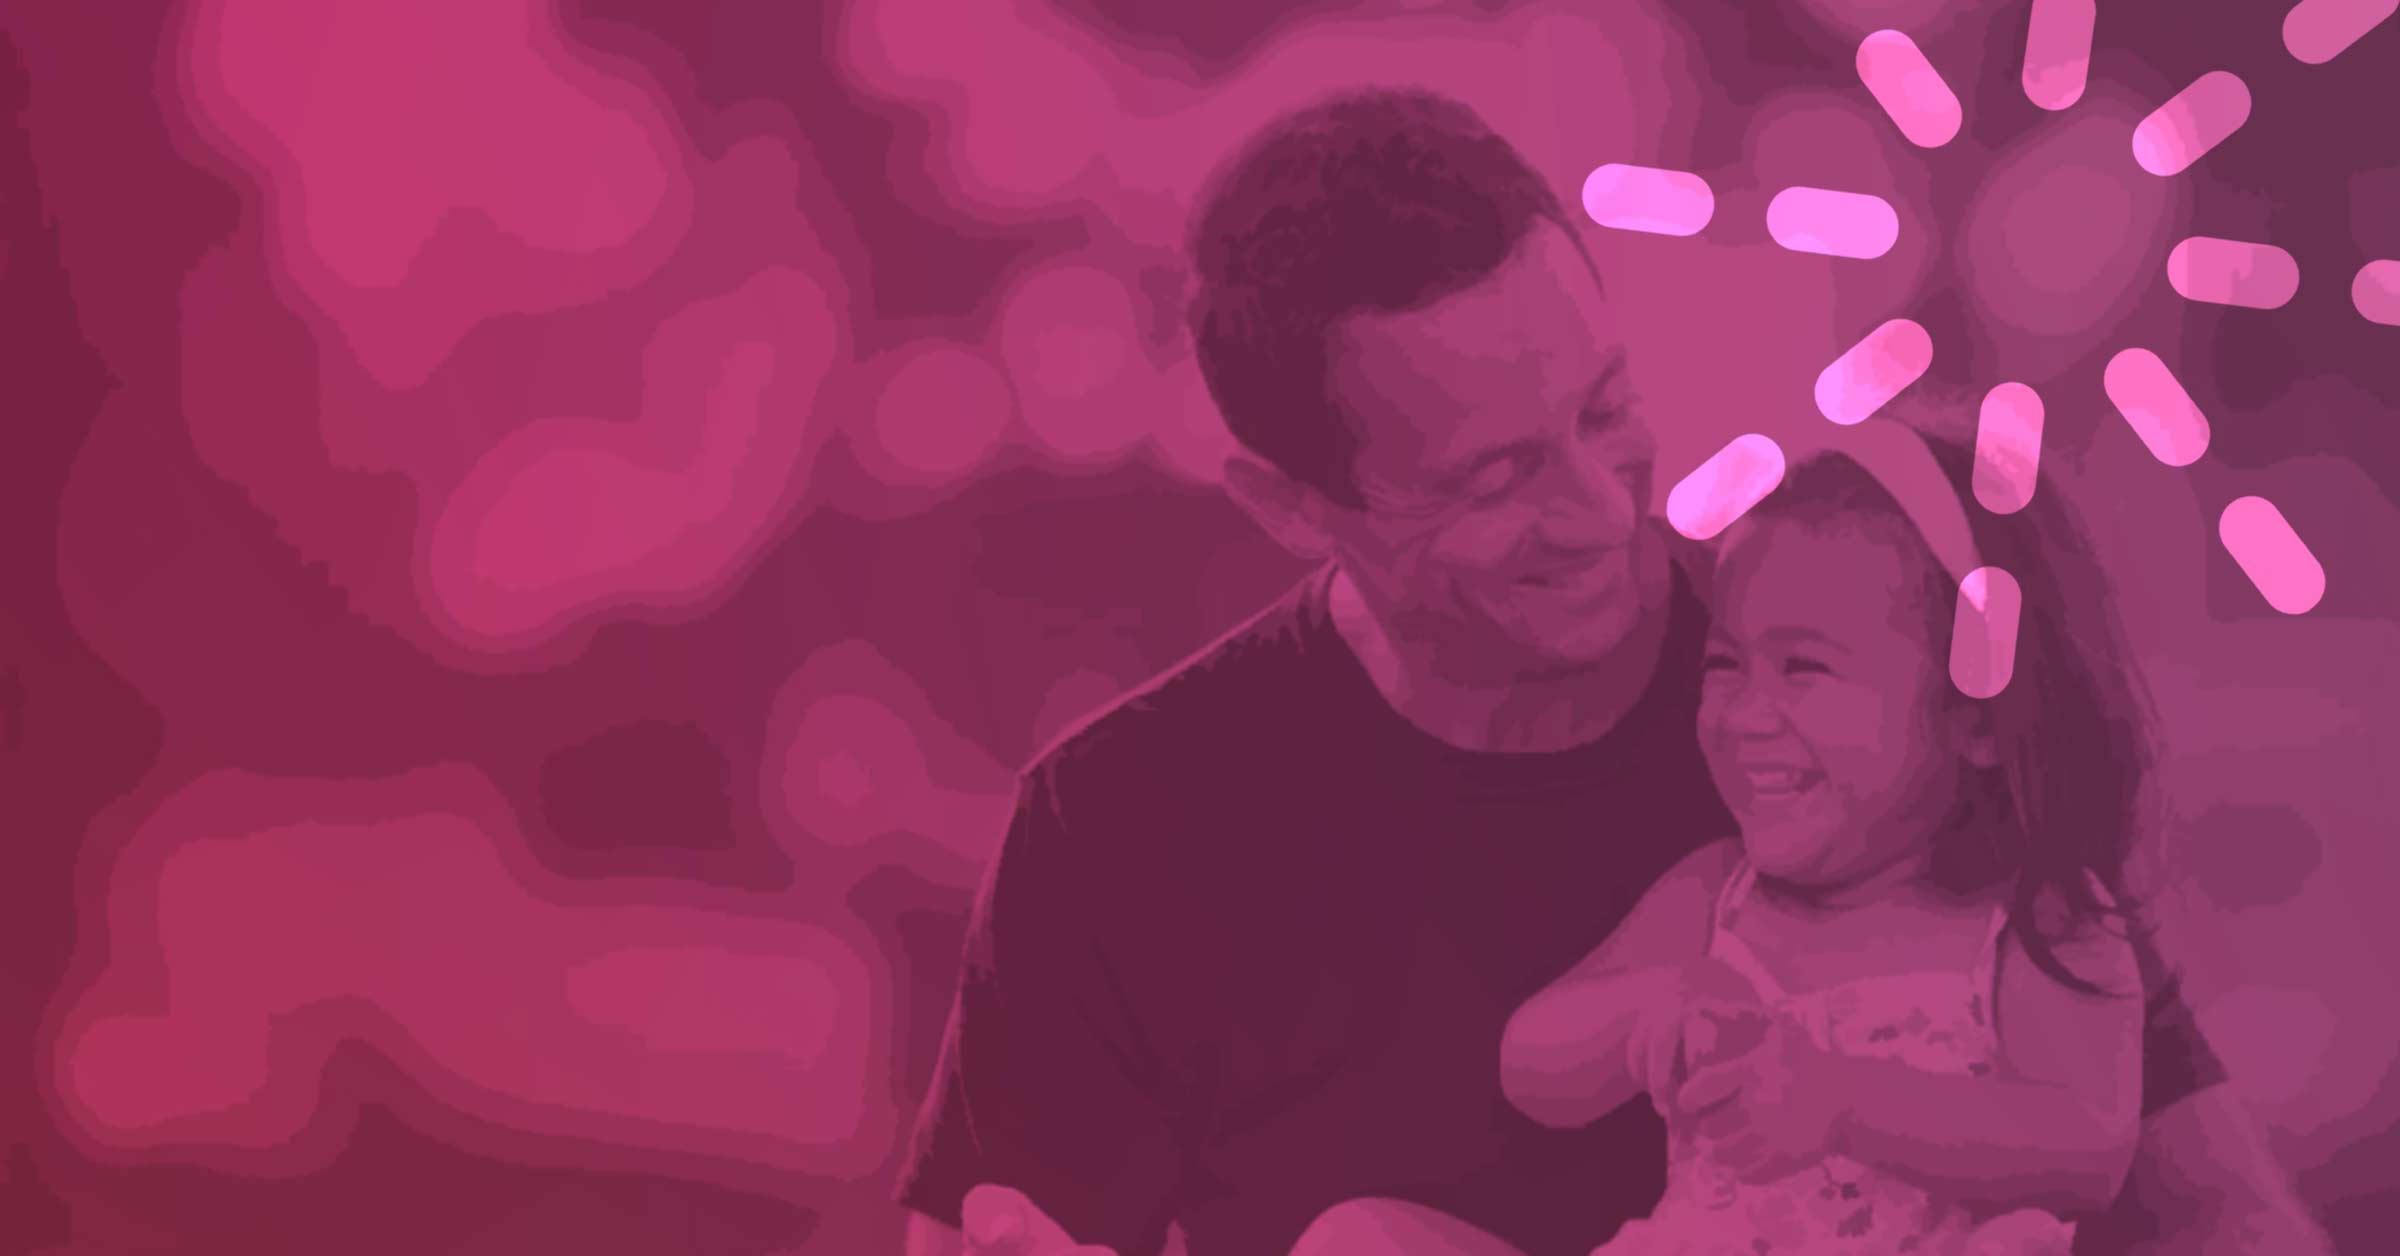 How a Father's Approval Impacts a Child